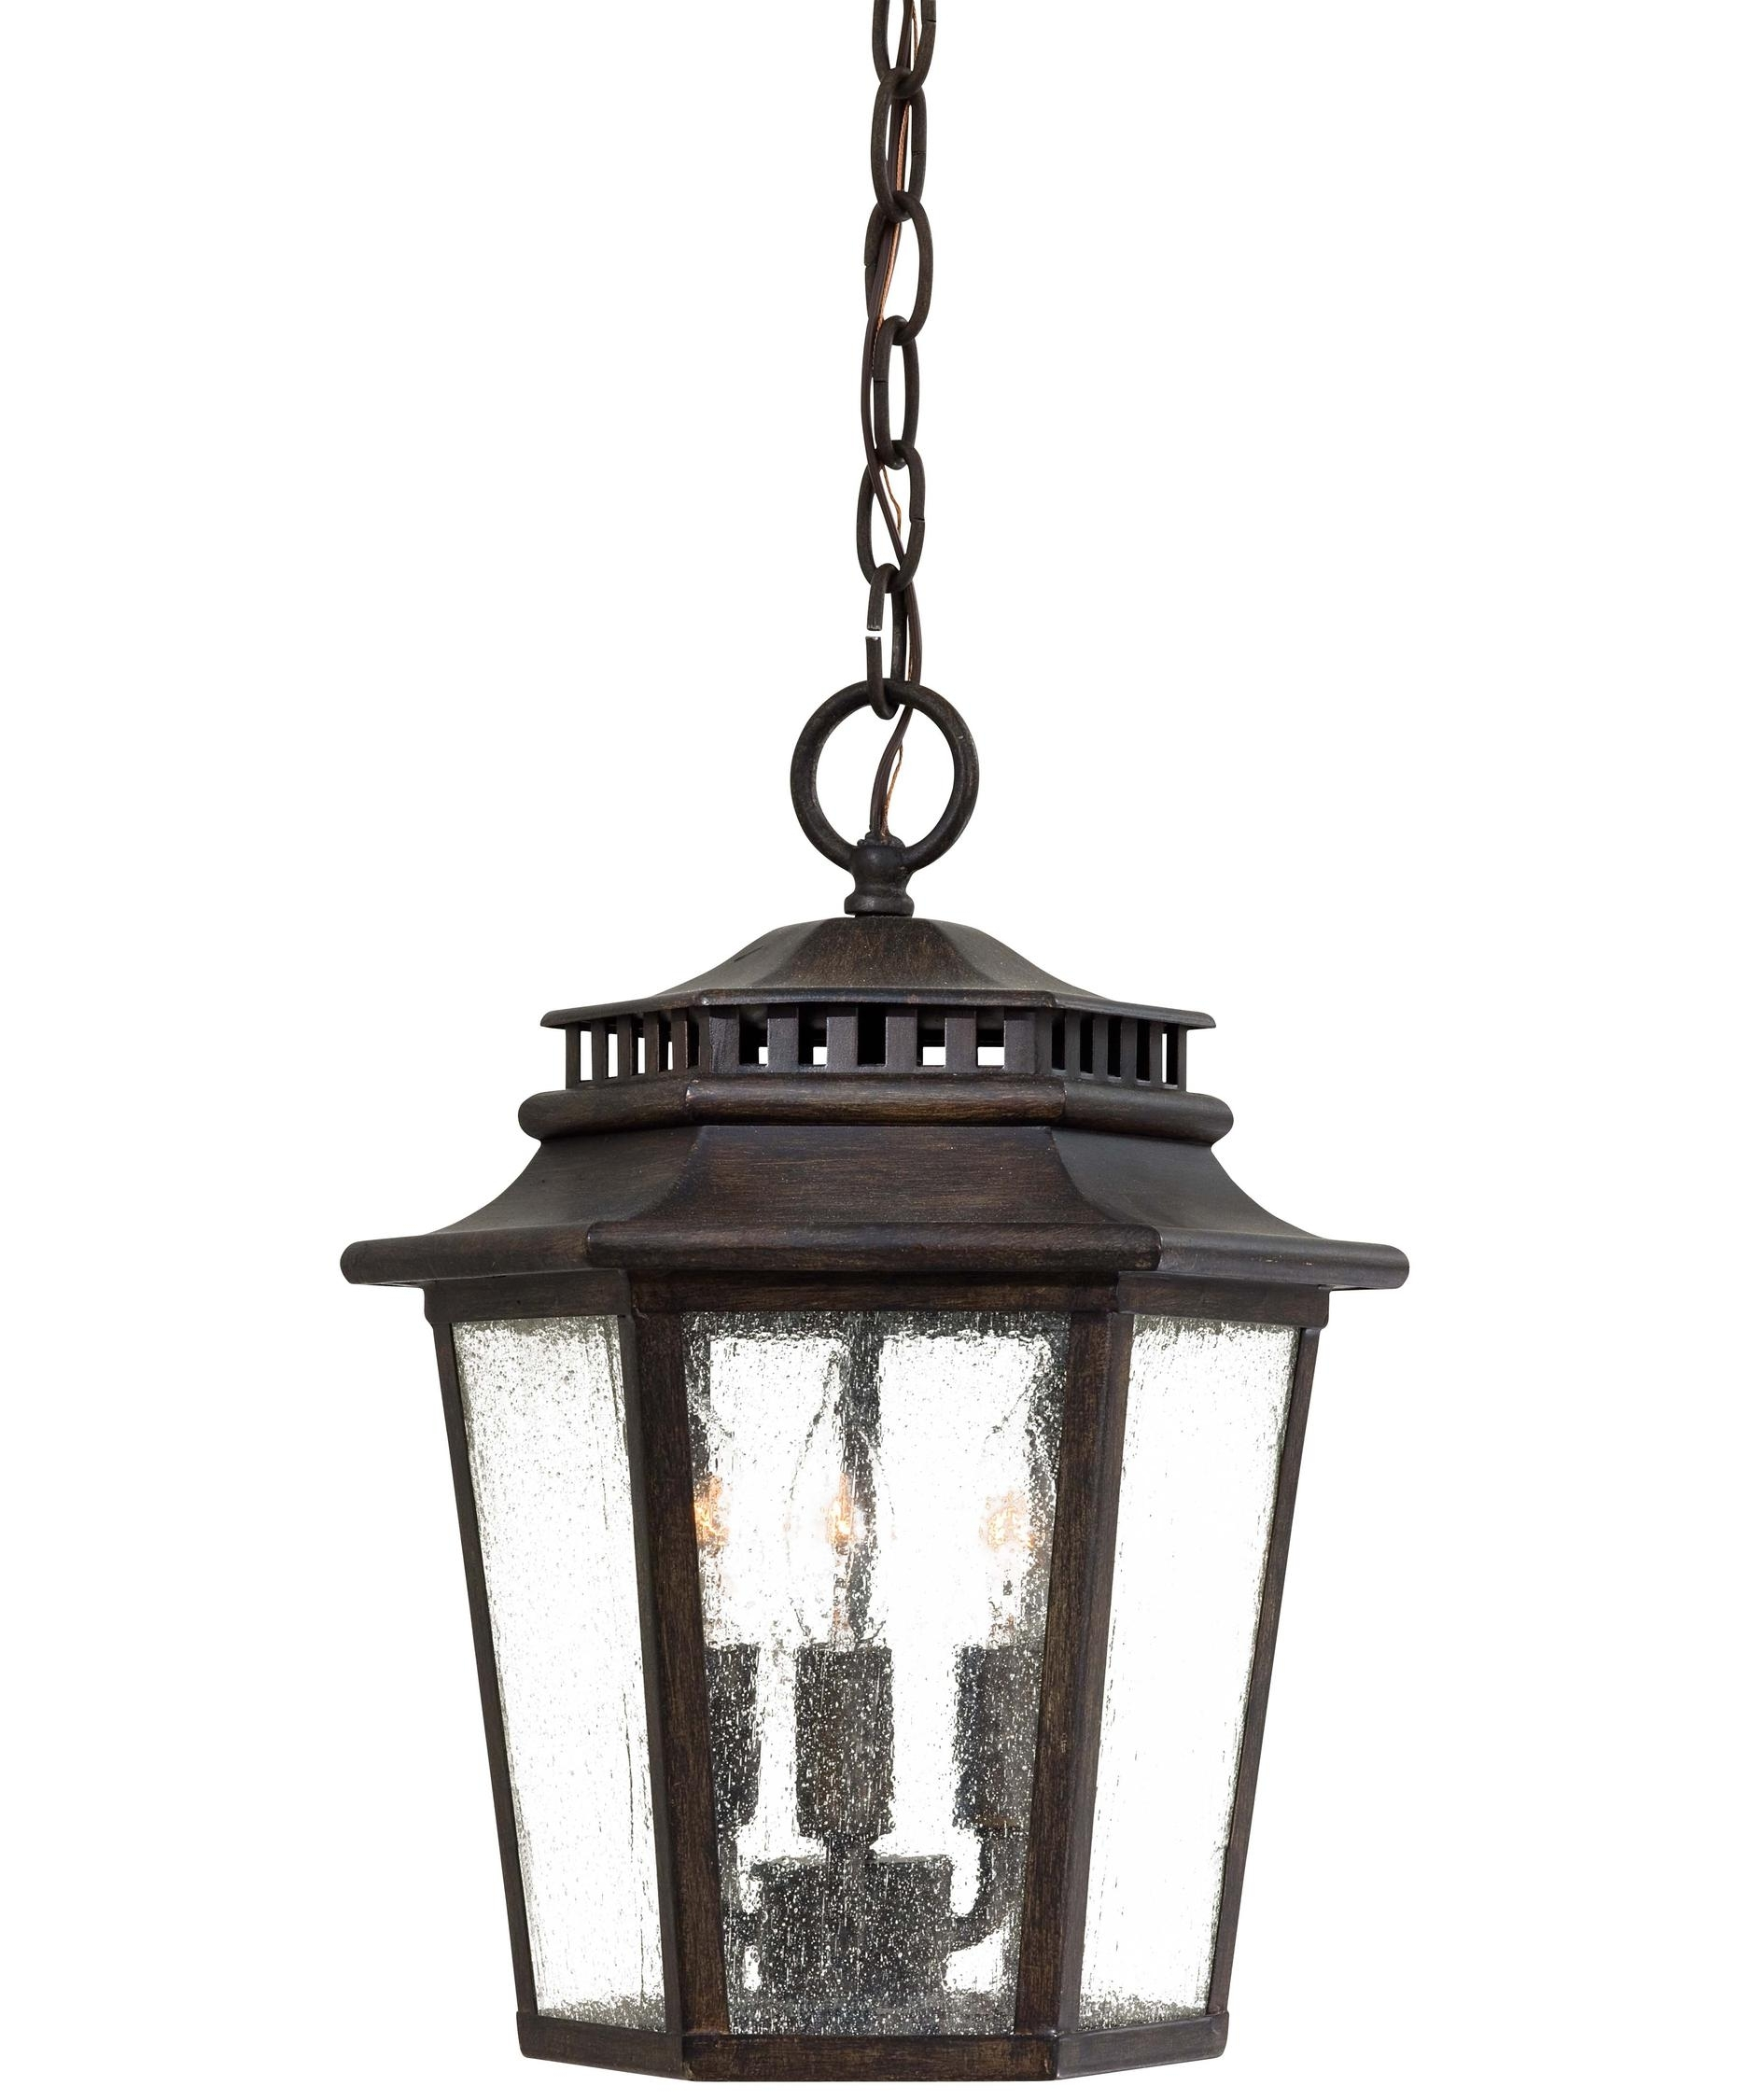 Minka Lavery 8274 Wickford Bay 11 Inch Wide 3 Light Outdoor Hanging Within Outdoor Lanterns With Battery Operated (View 14 of 20)